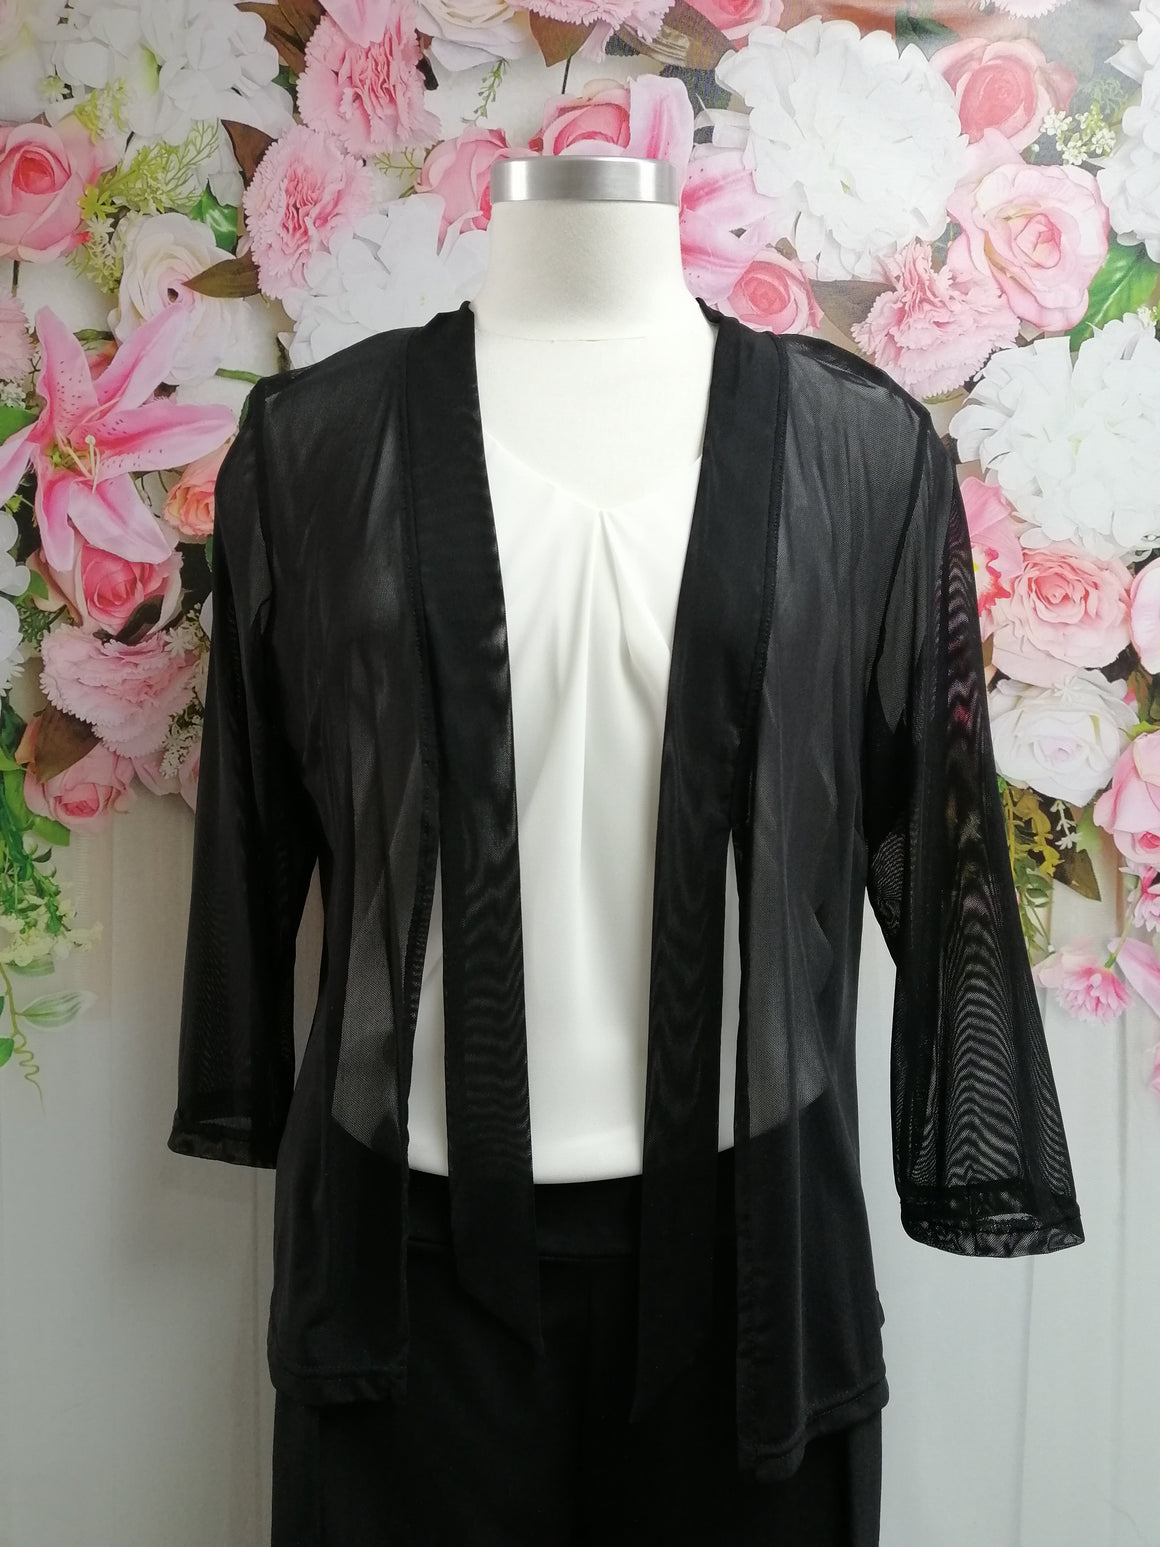 Vivid Cardi with Tie - Black - Fashion Focus